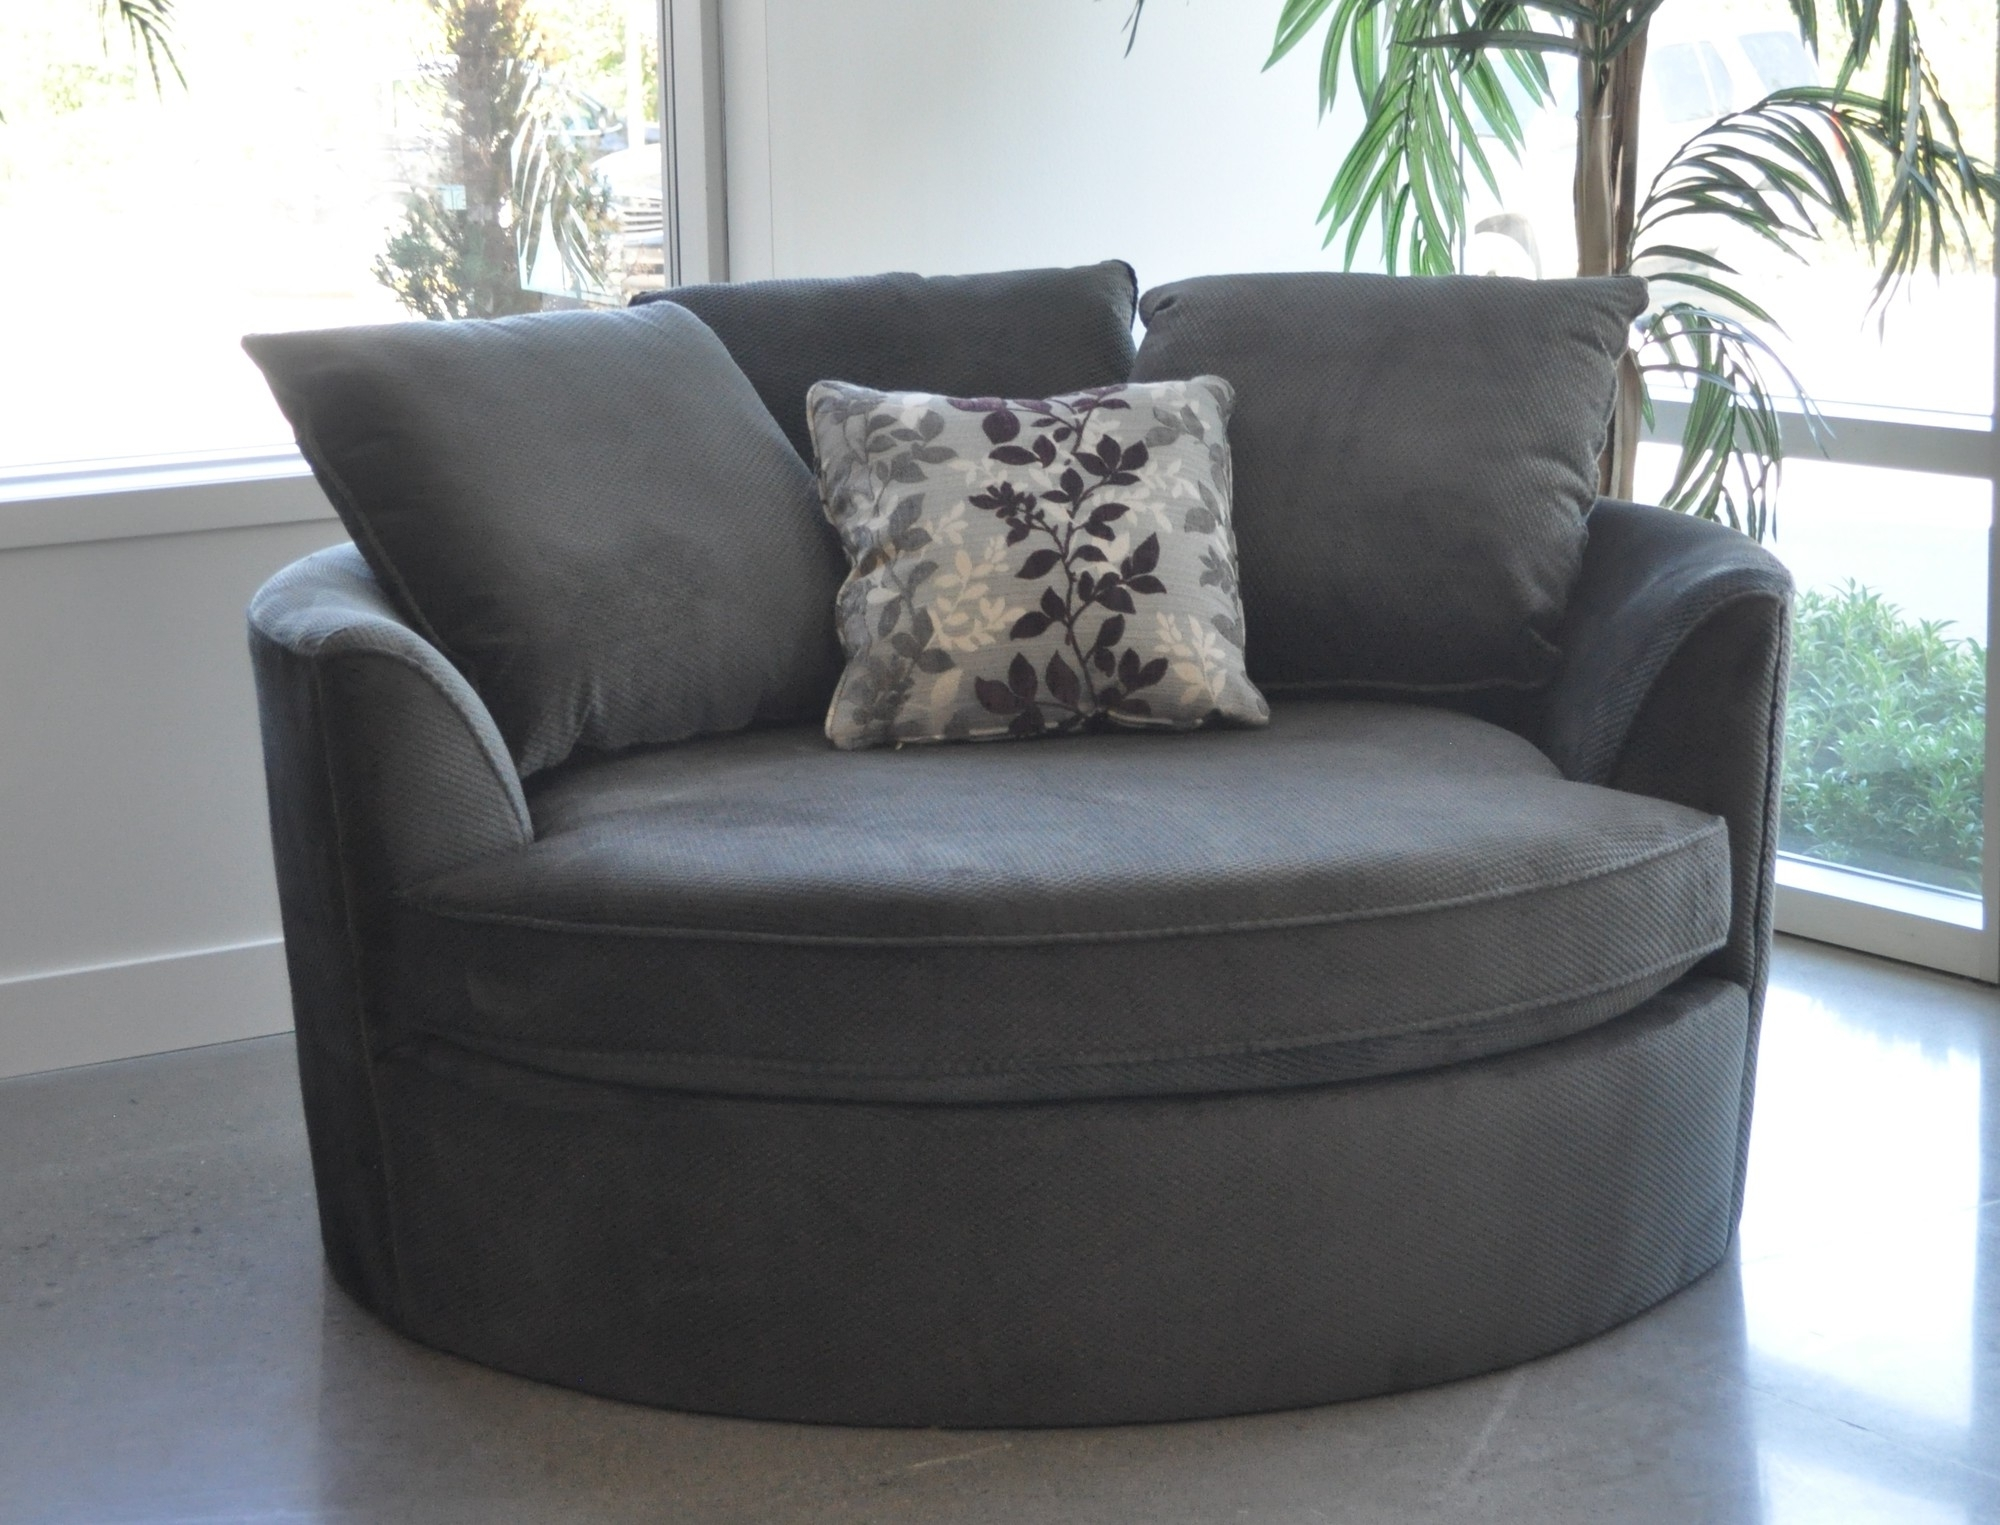 Sofa : Round Single Sofa Chair Buy Round Sofa Chair Round Sofa In Trendy Round Sofas (View 18 of 20)